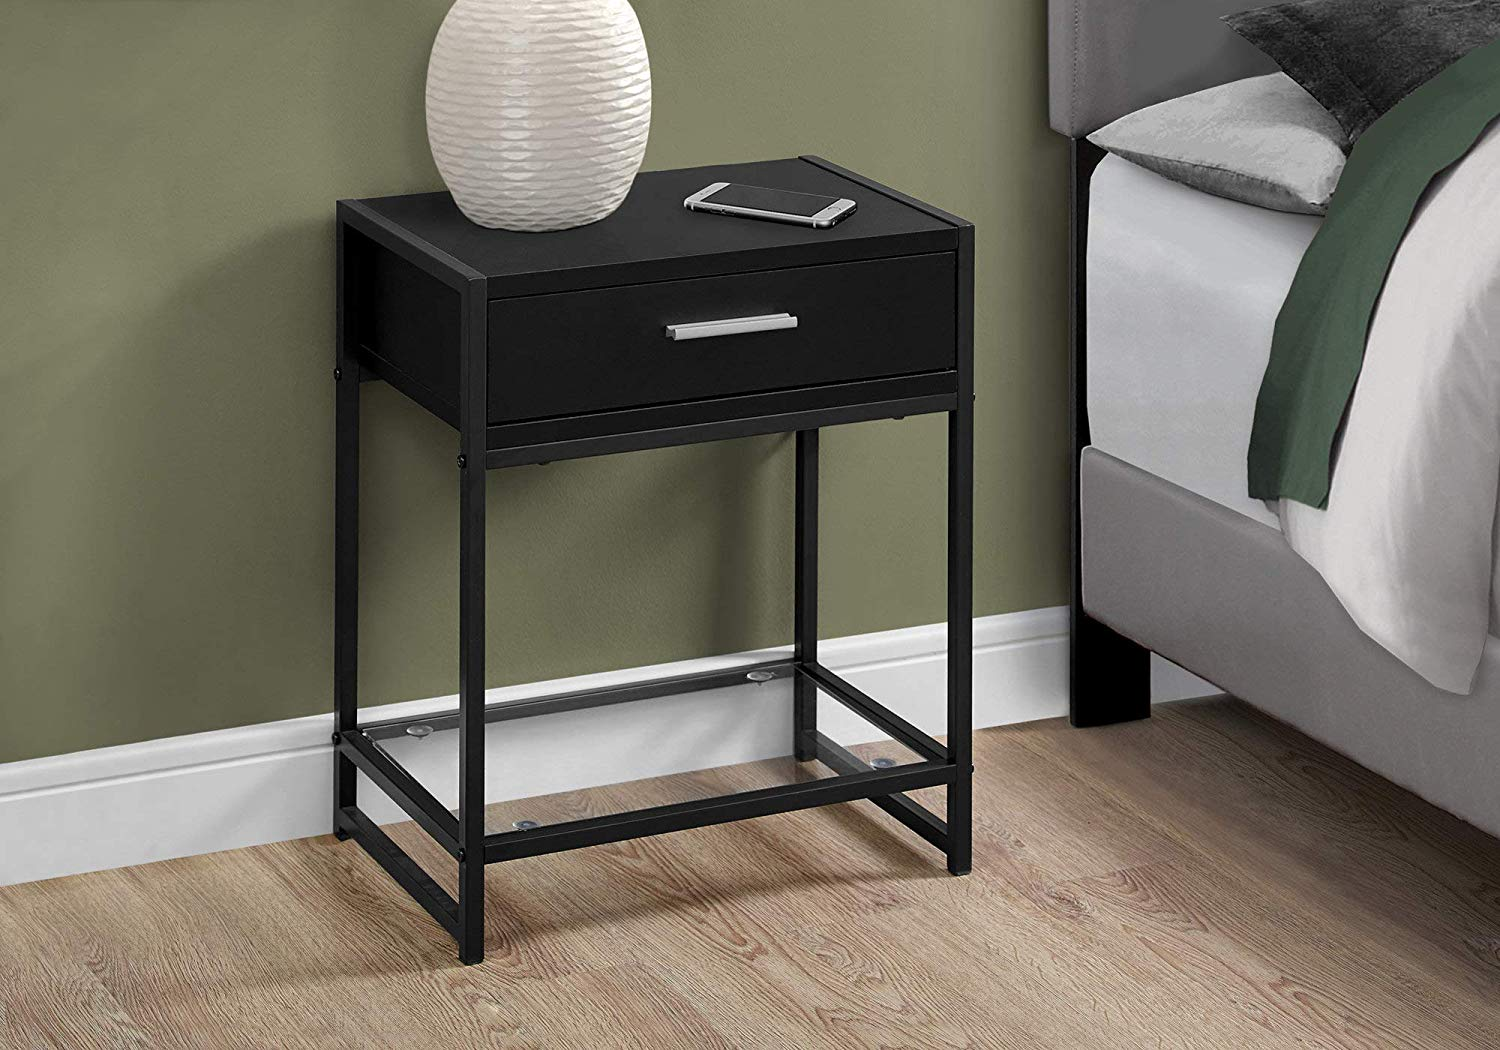 monarch specialties accent end table night room essentials stand black kitchen dining ikea coffee tables and side hampton bay wicker patio furniture small white garden half round